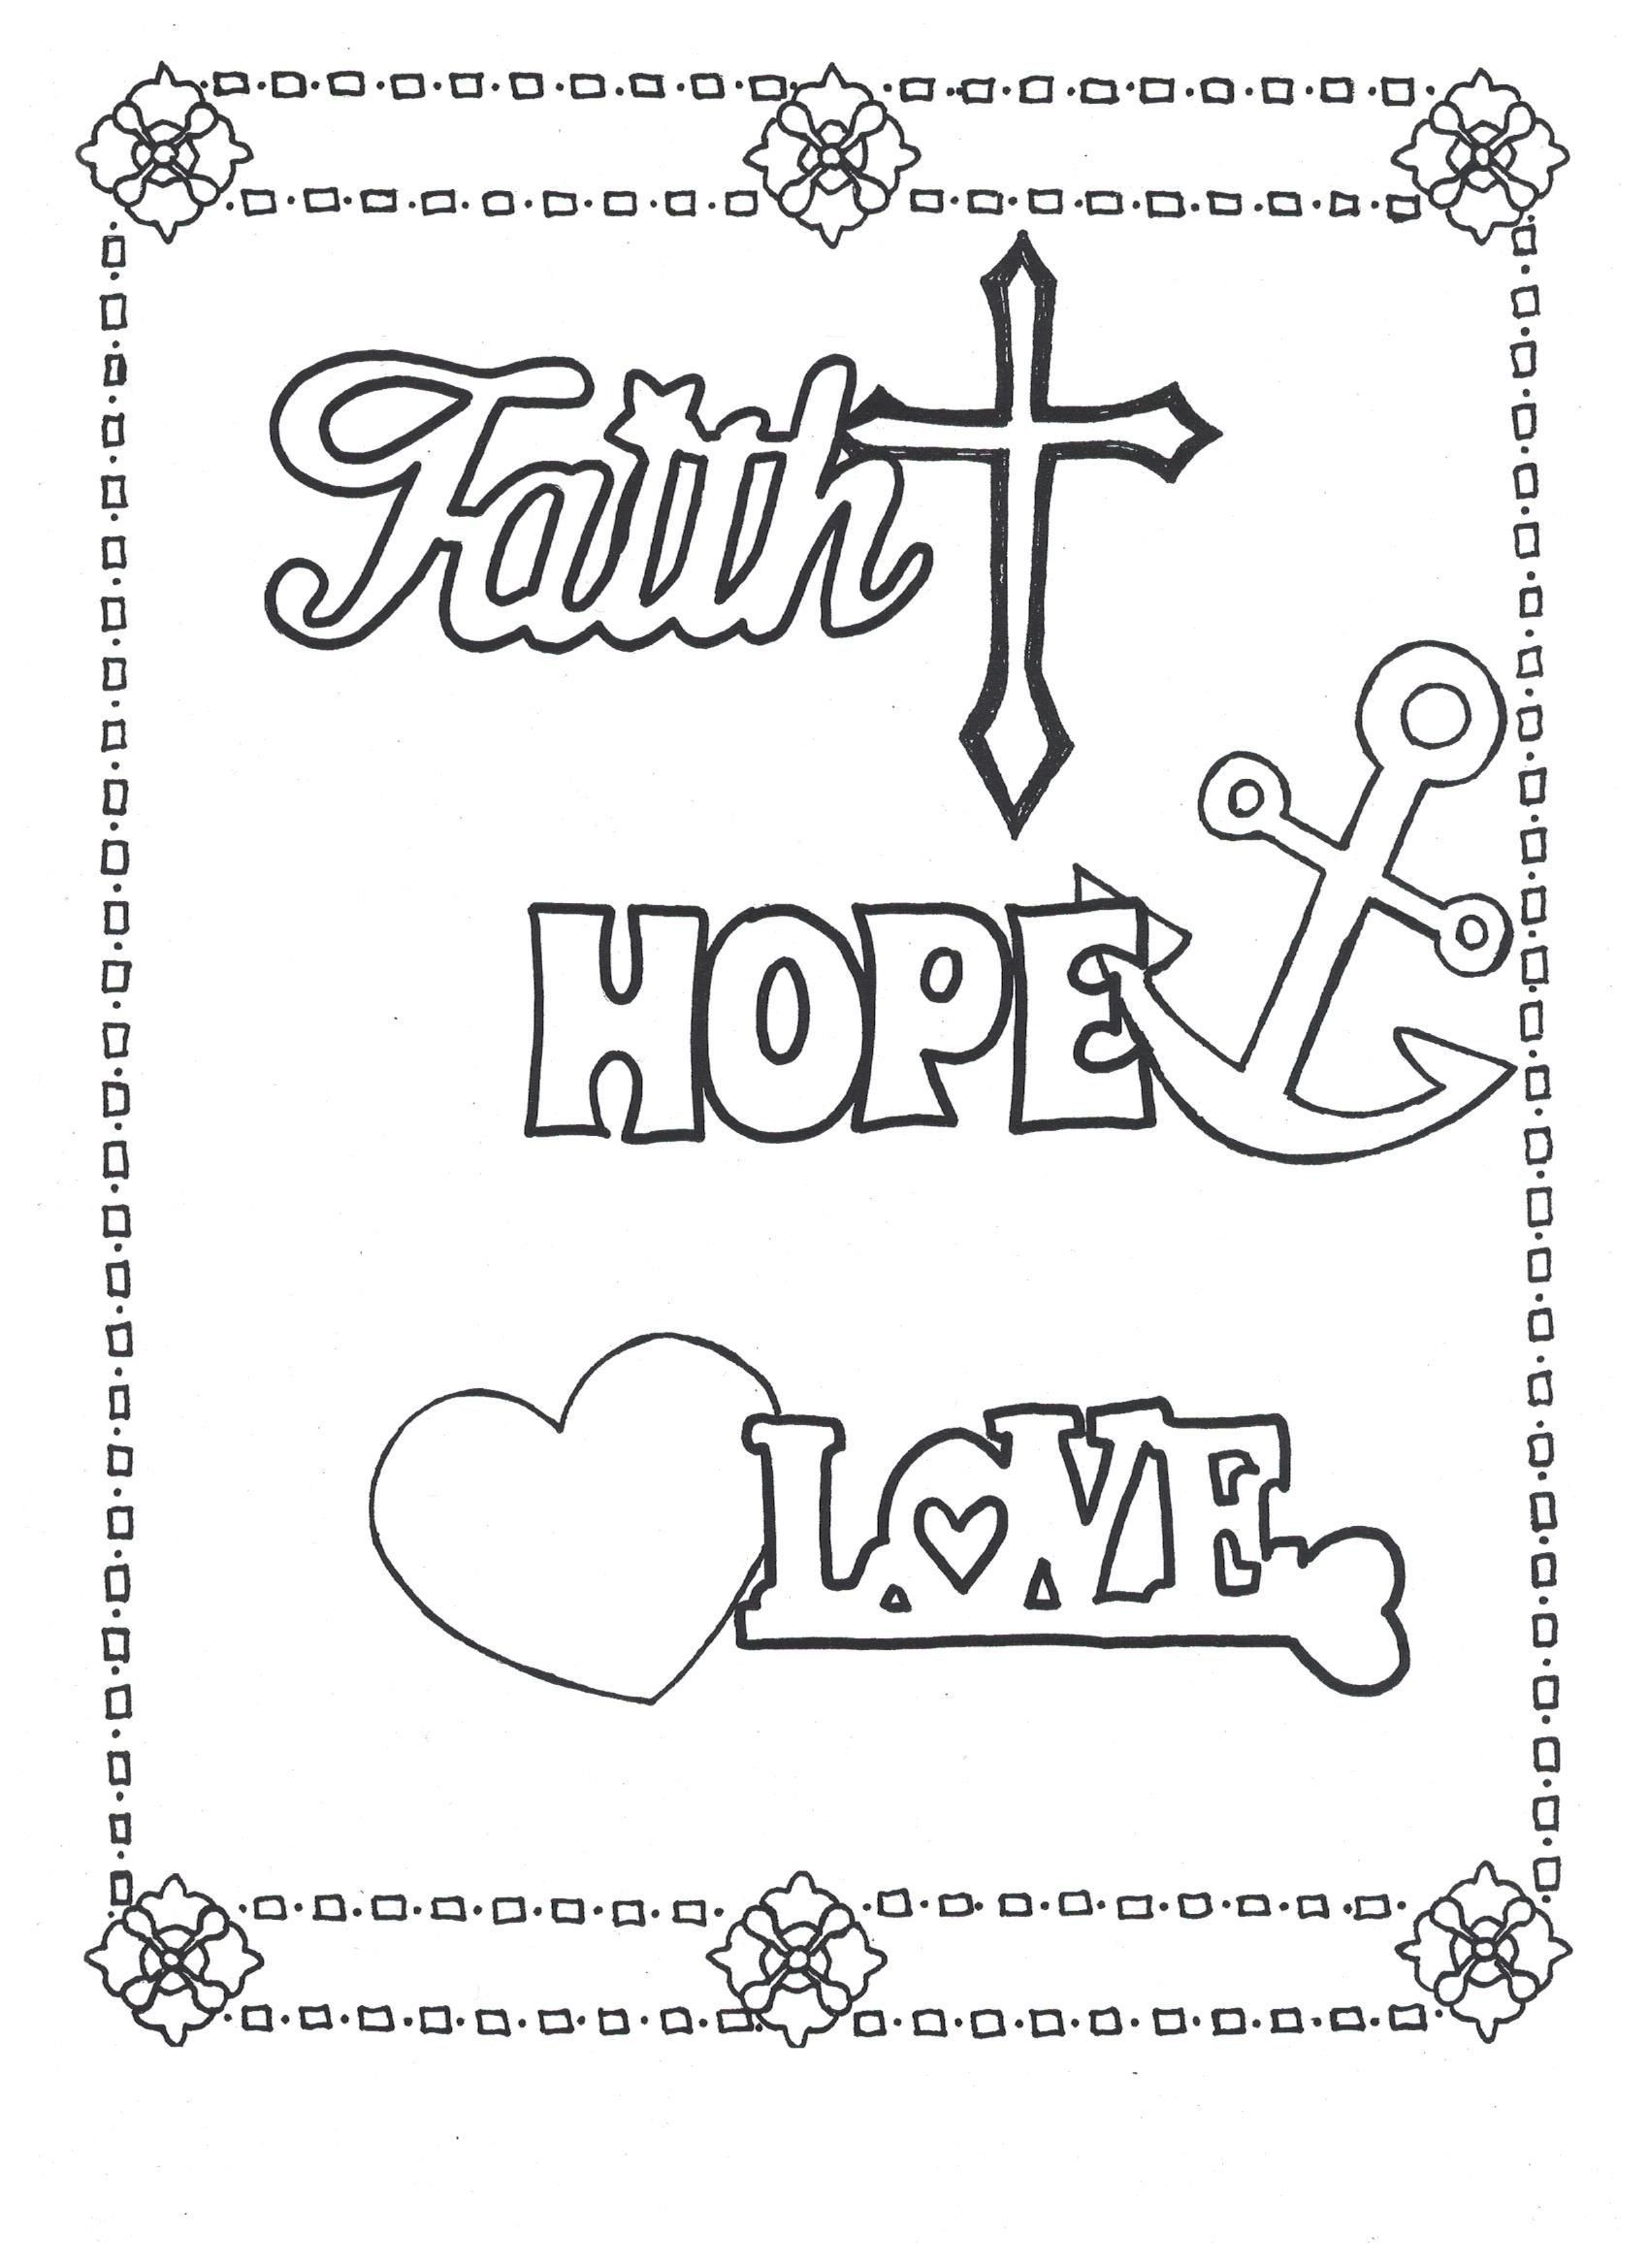 Rosh Hashanah Coloring Pages Fresh Fresh Faith Hope And